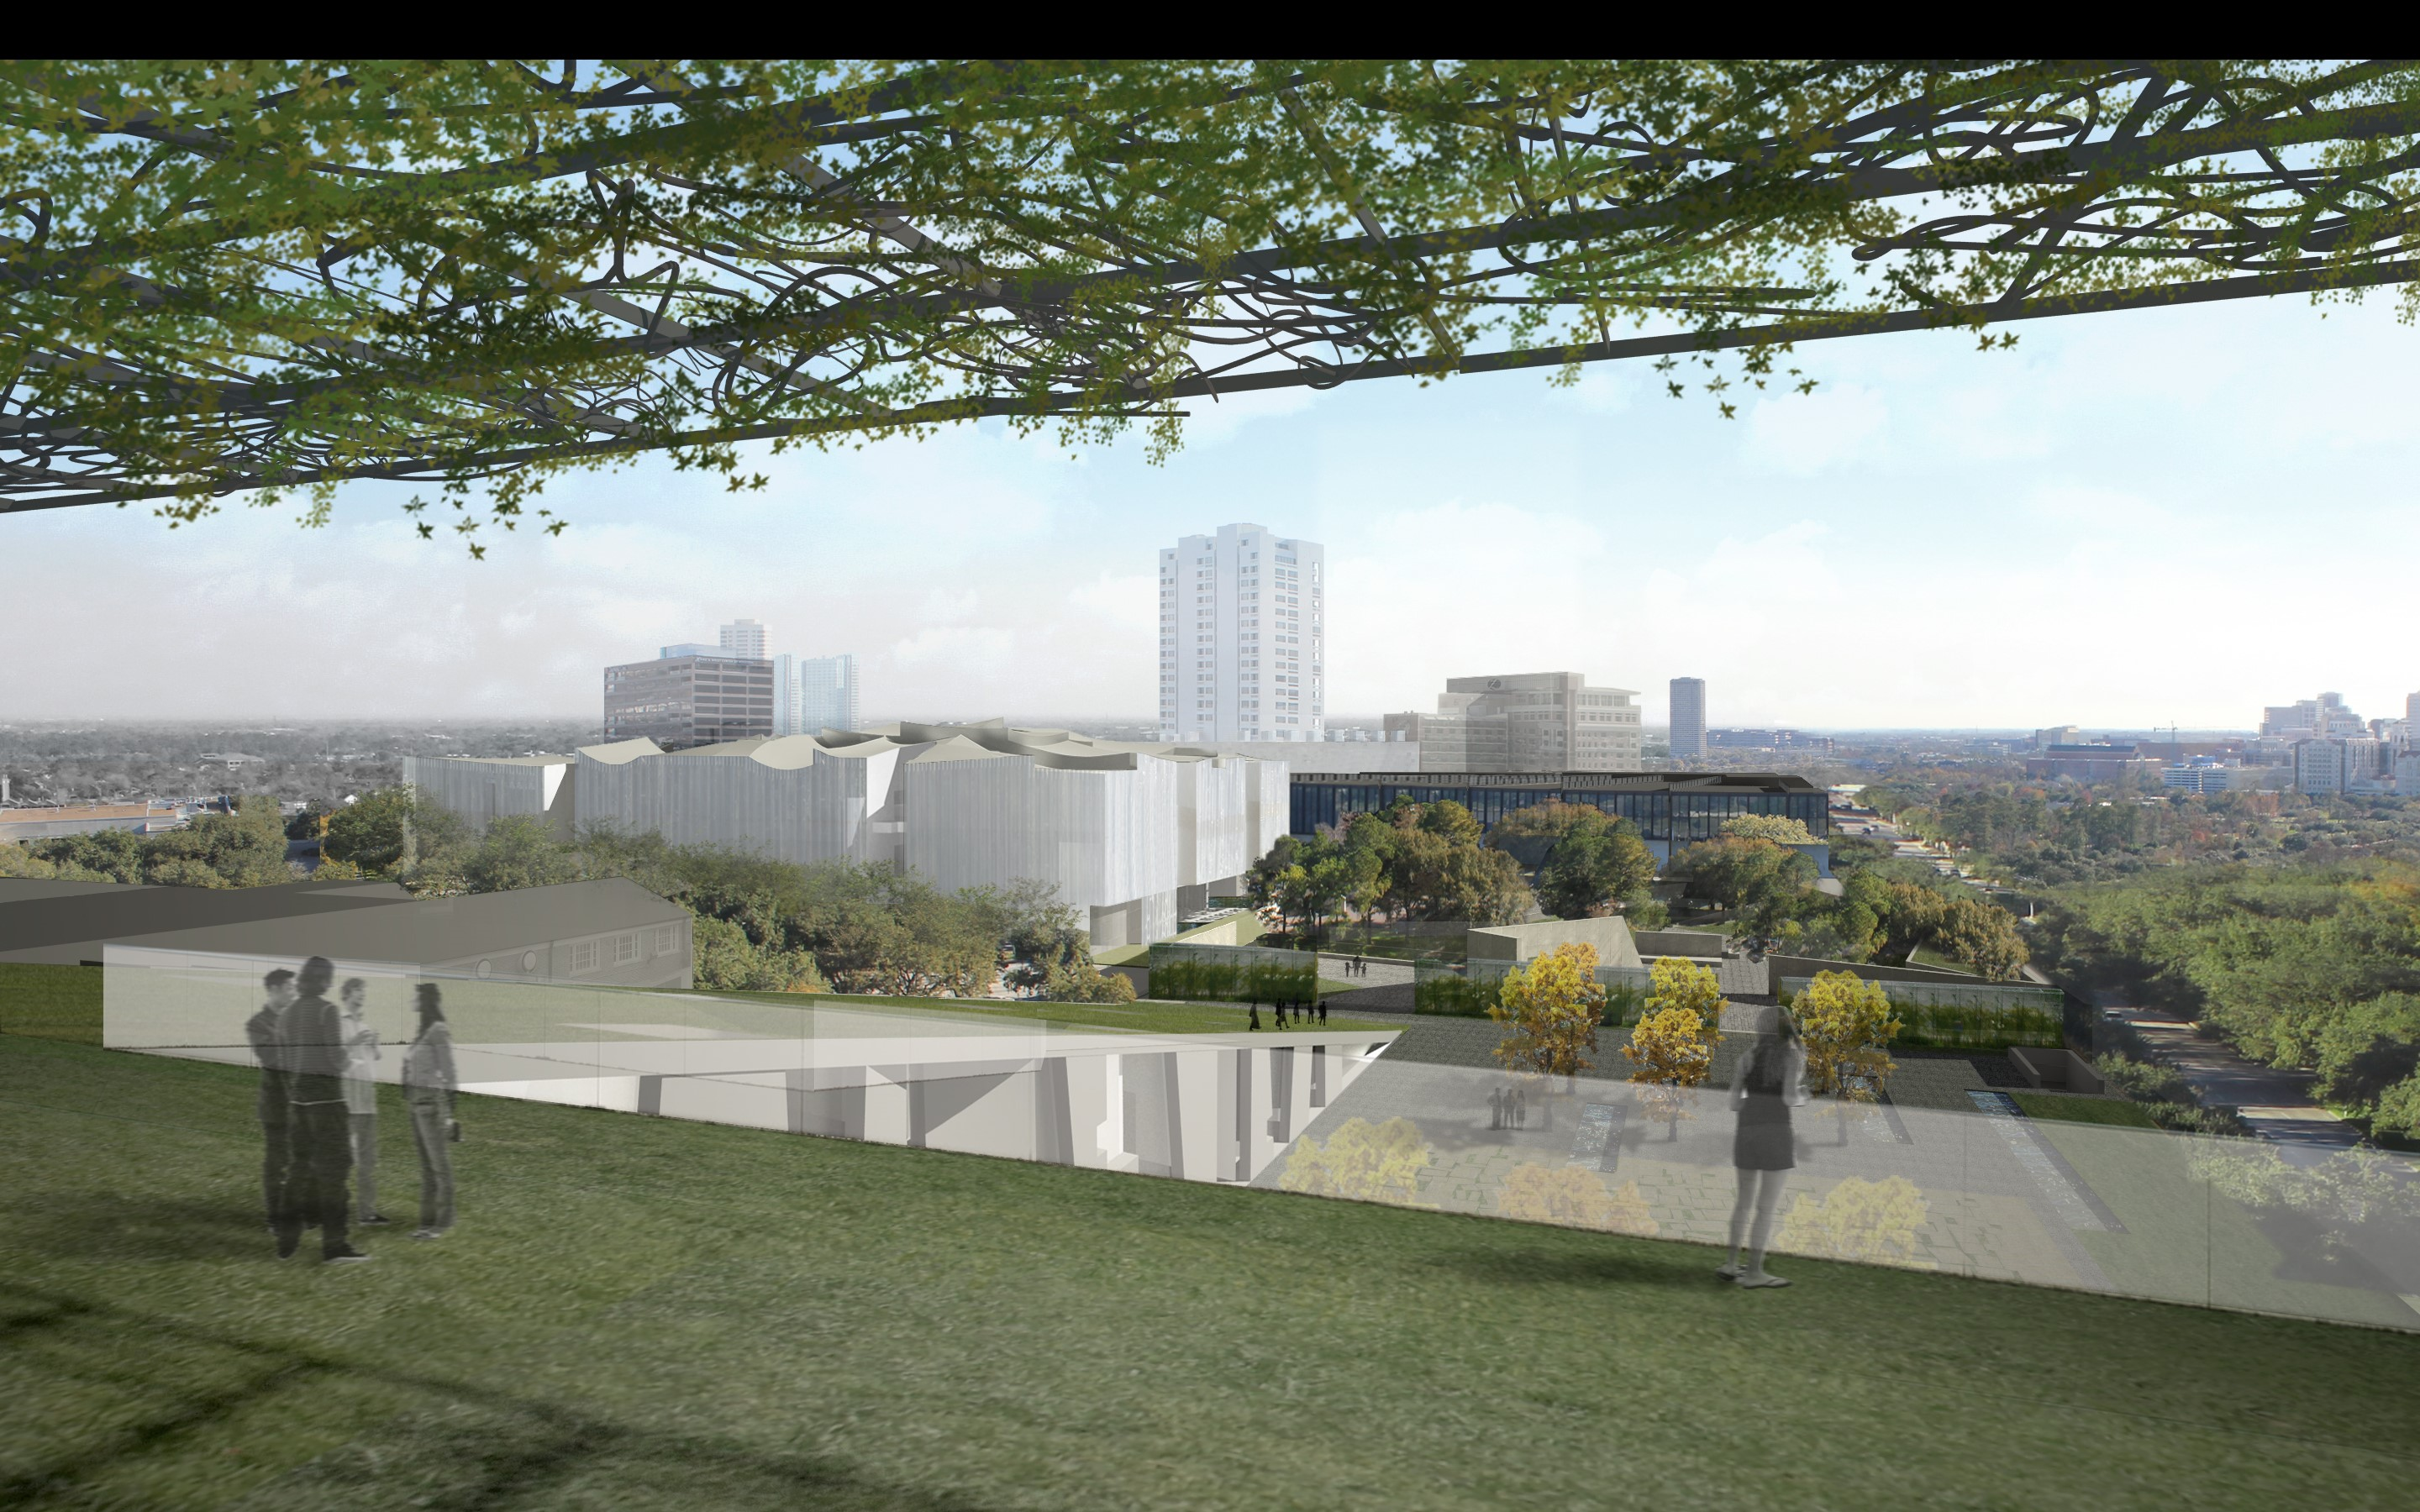 Campus plans kinder gallery building from glassell roof